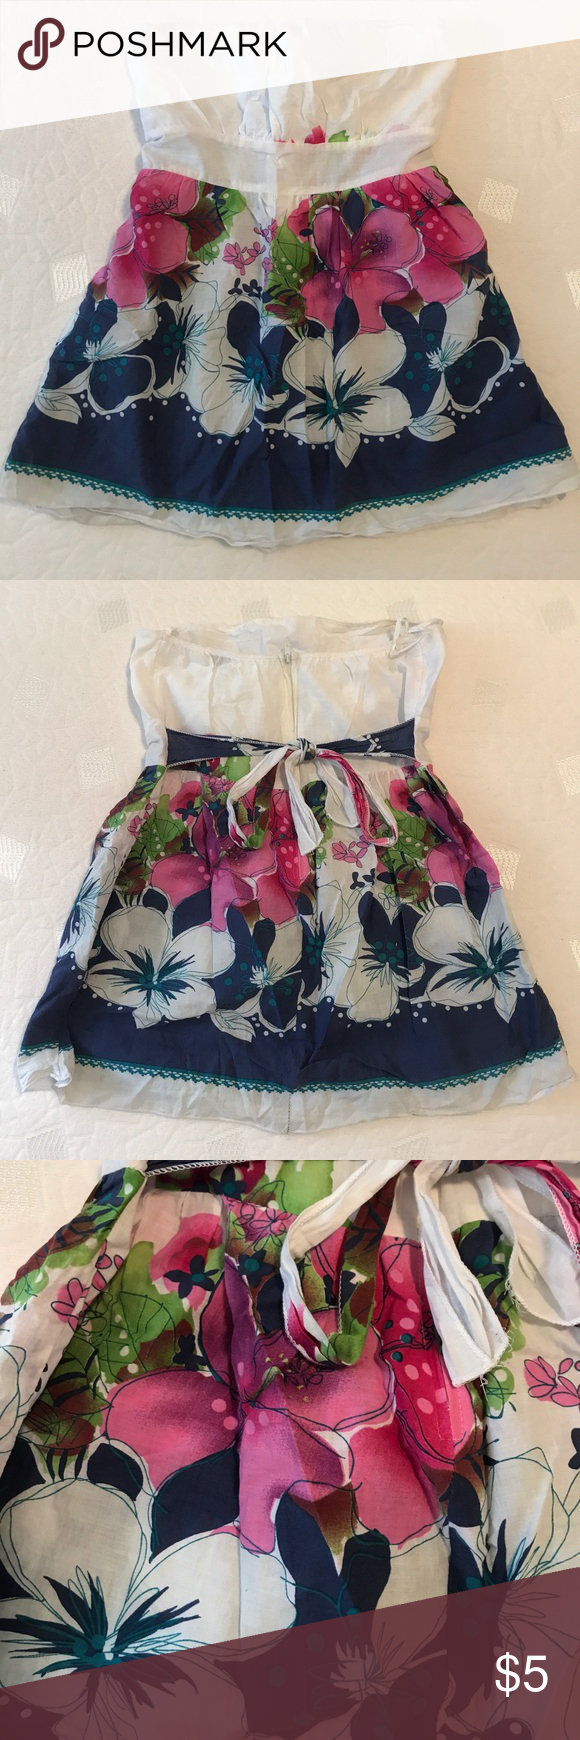 Céline by Champion strapless floral top EUC fun and flirty strapless top white bust area with blue and pink floral flow away from the body bottom. Zips and ties. Céline by Champion is an L.A. Based company. Lovely top to wear on a hot summer day or at the beach. Céline by Champion Tops